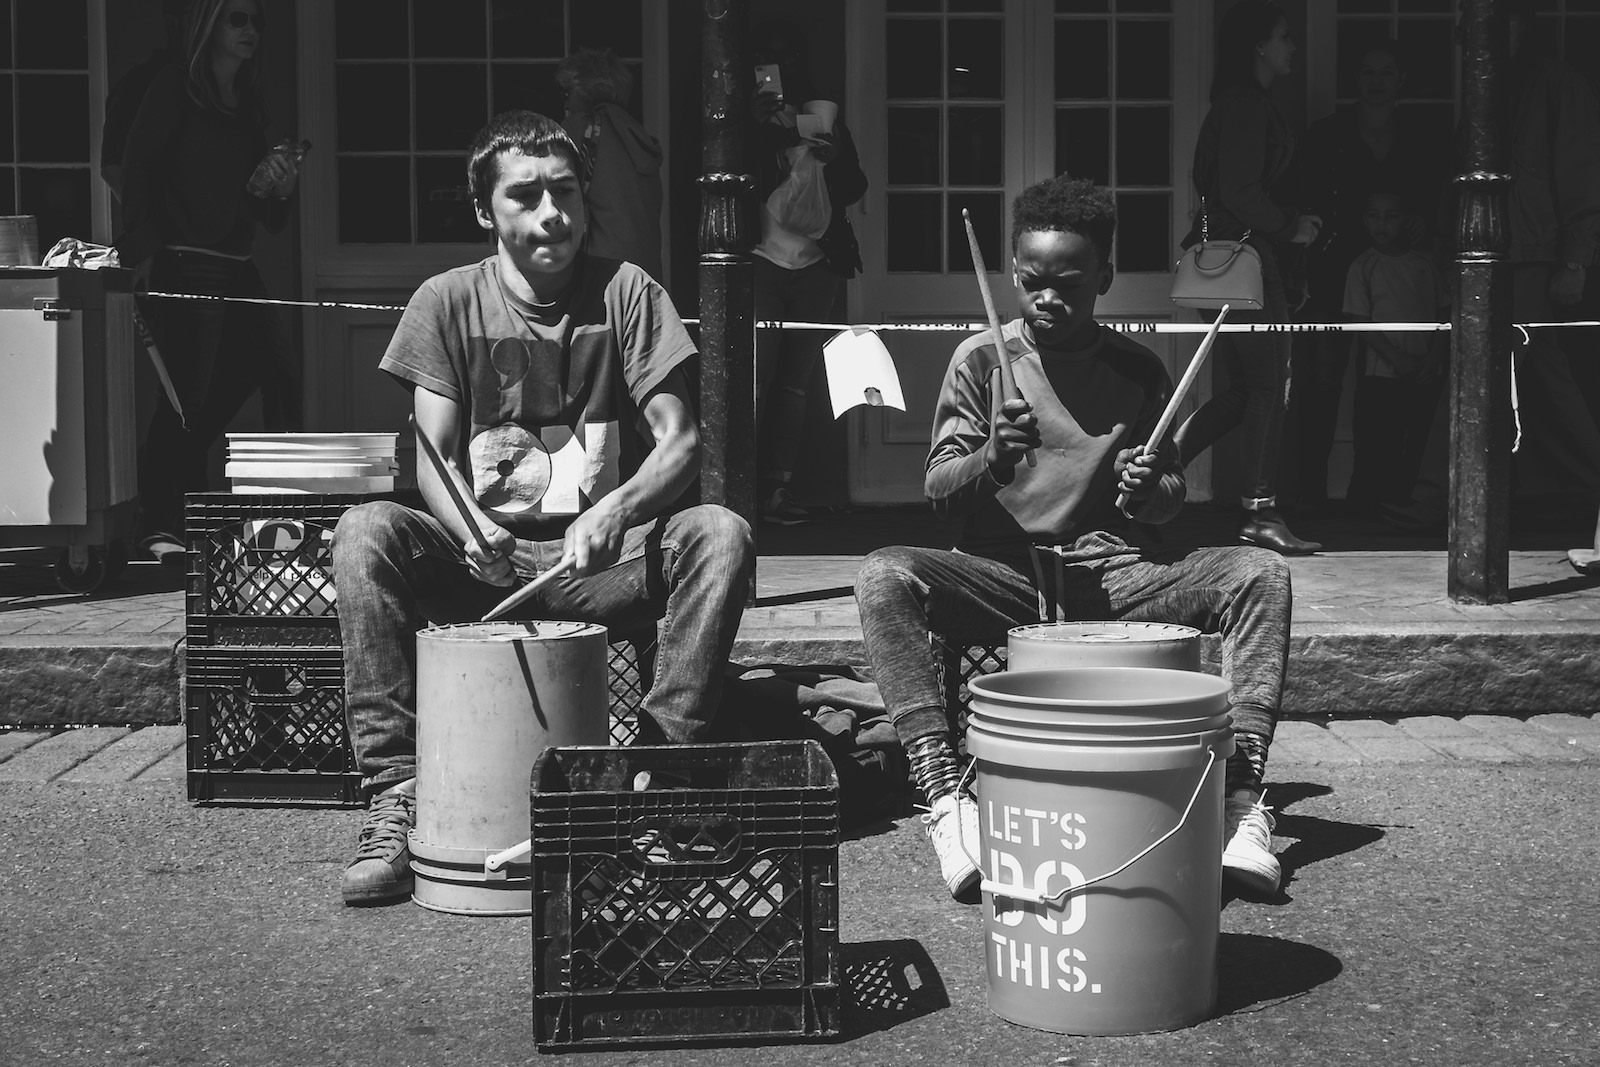 Two young boys play bucket drums on the streets of New Orleans, LA.